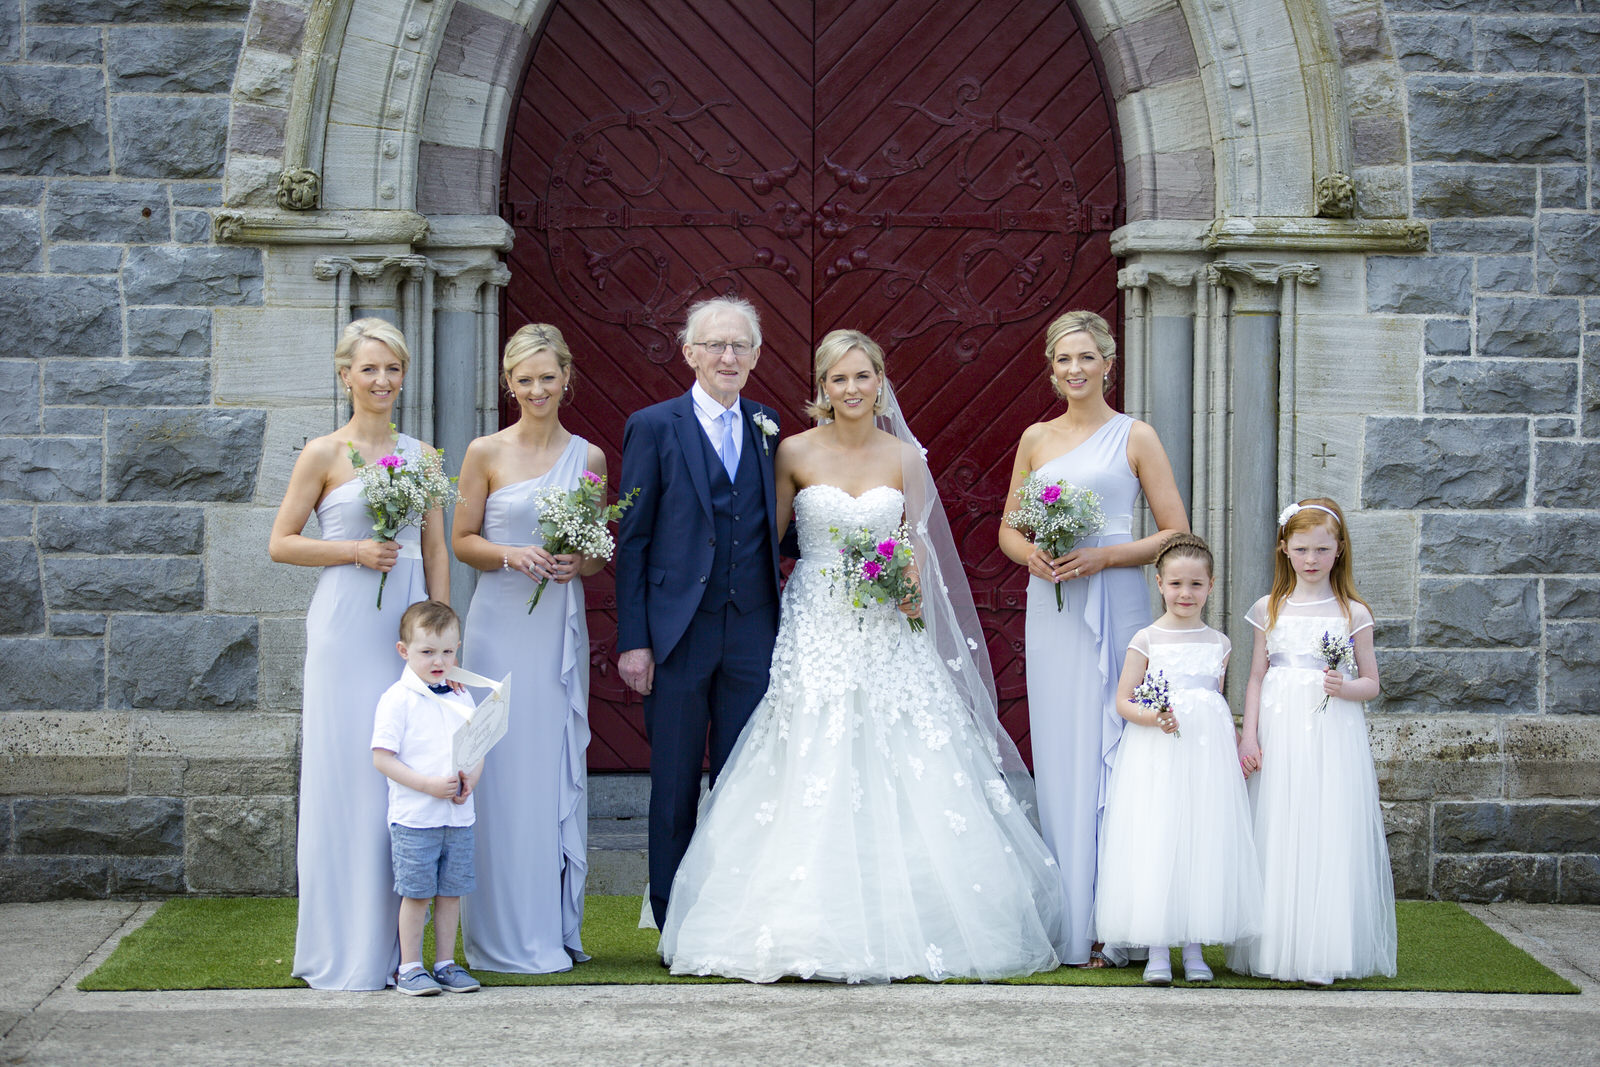 Ashley_park_wedding_photographer_ireland_a155.jpg